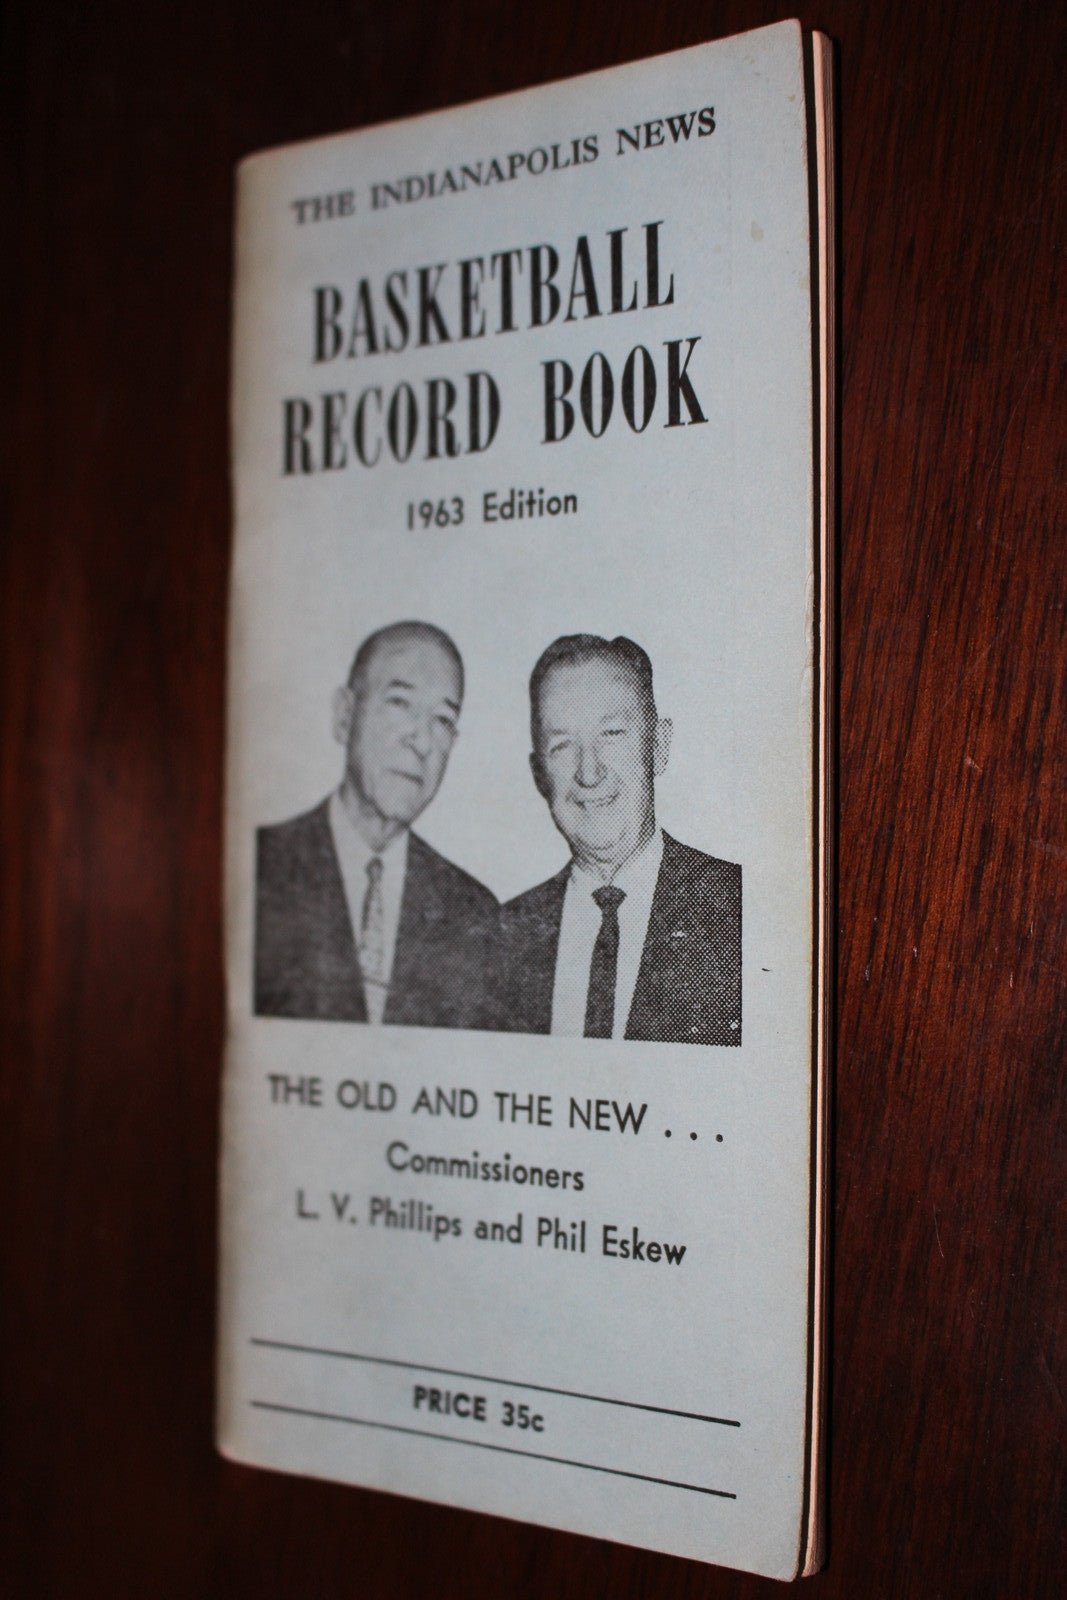 1963 Indianapolis News Basketball Record Book - Vintage Indy Sports